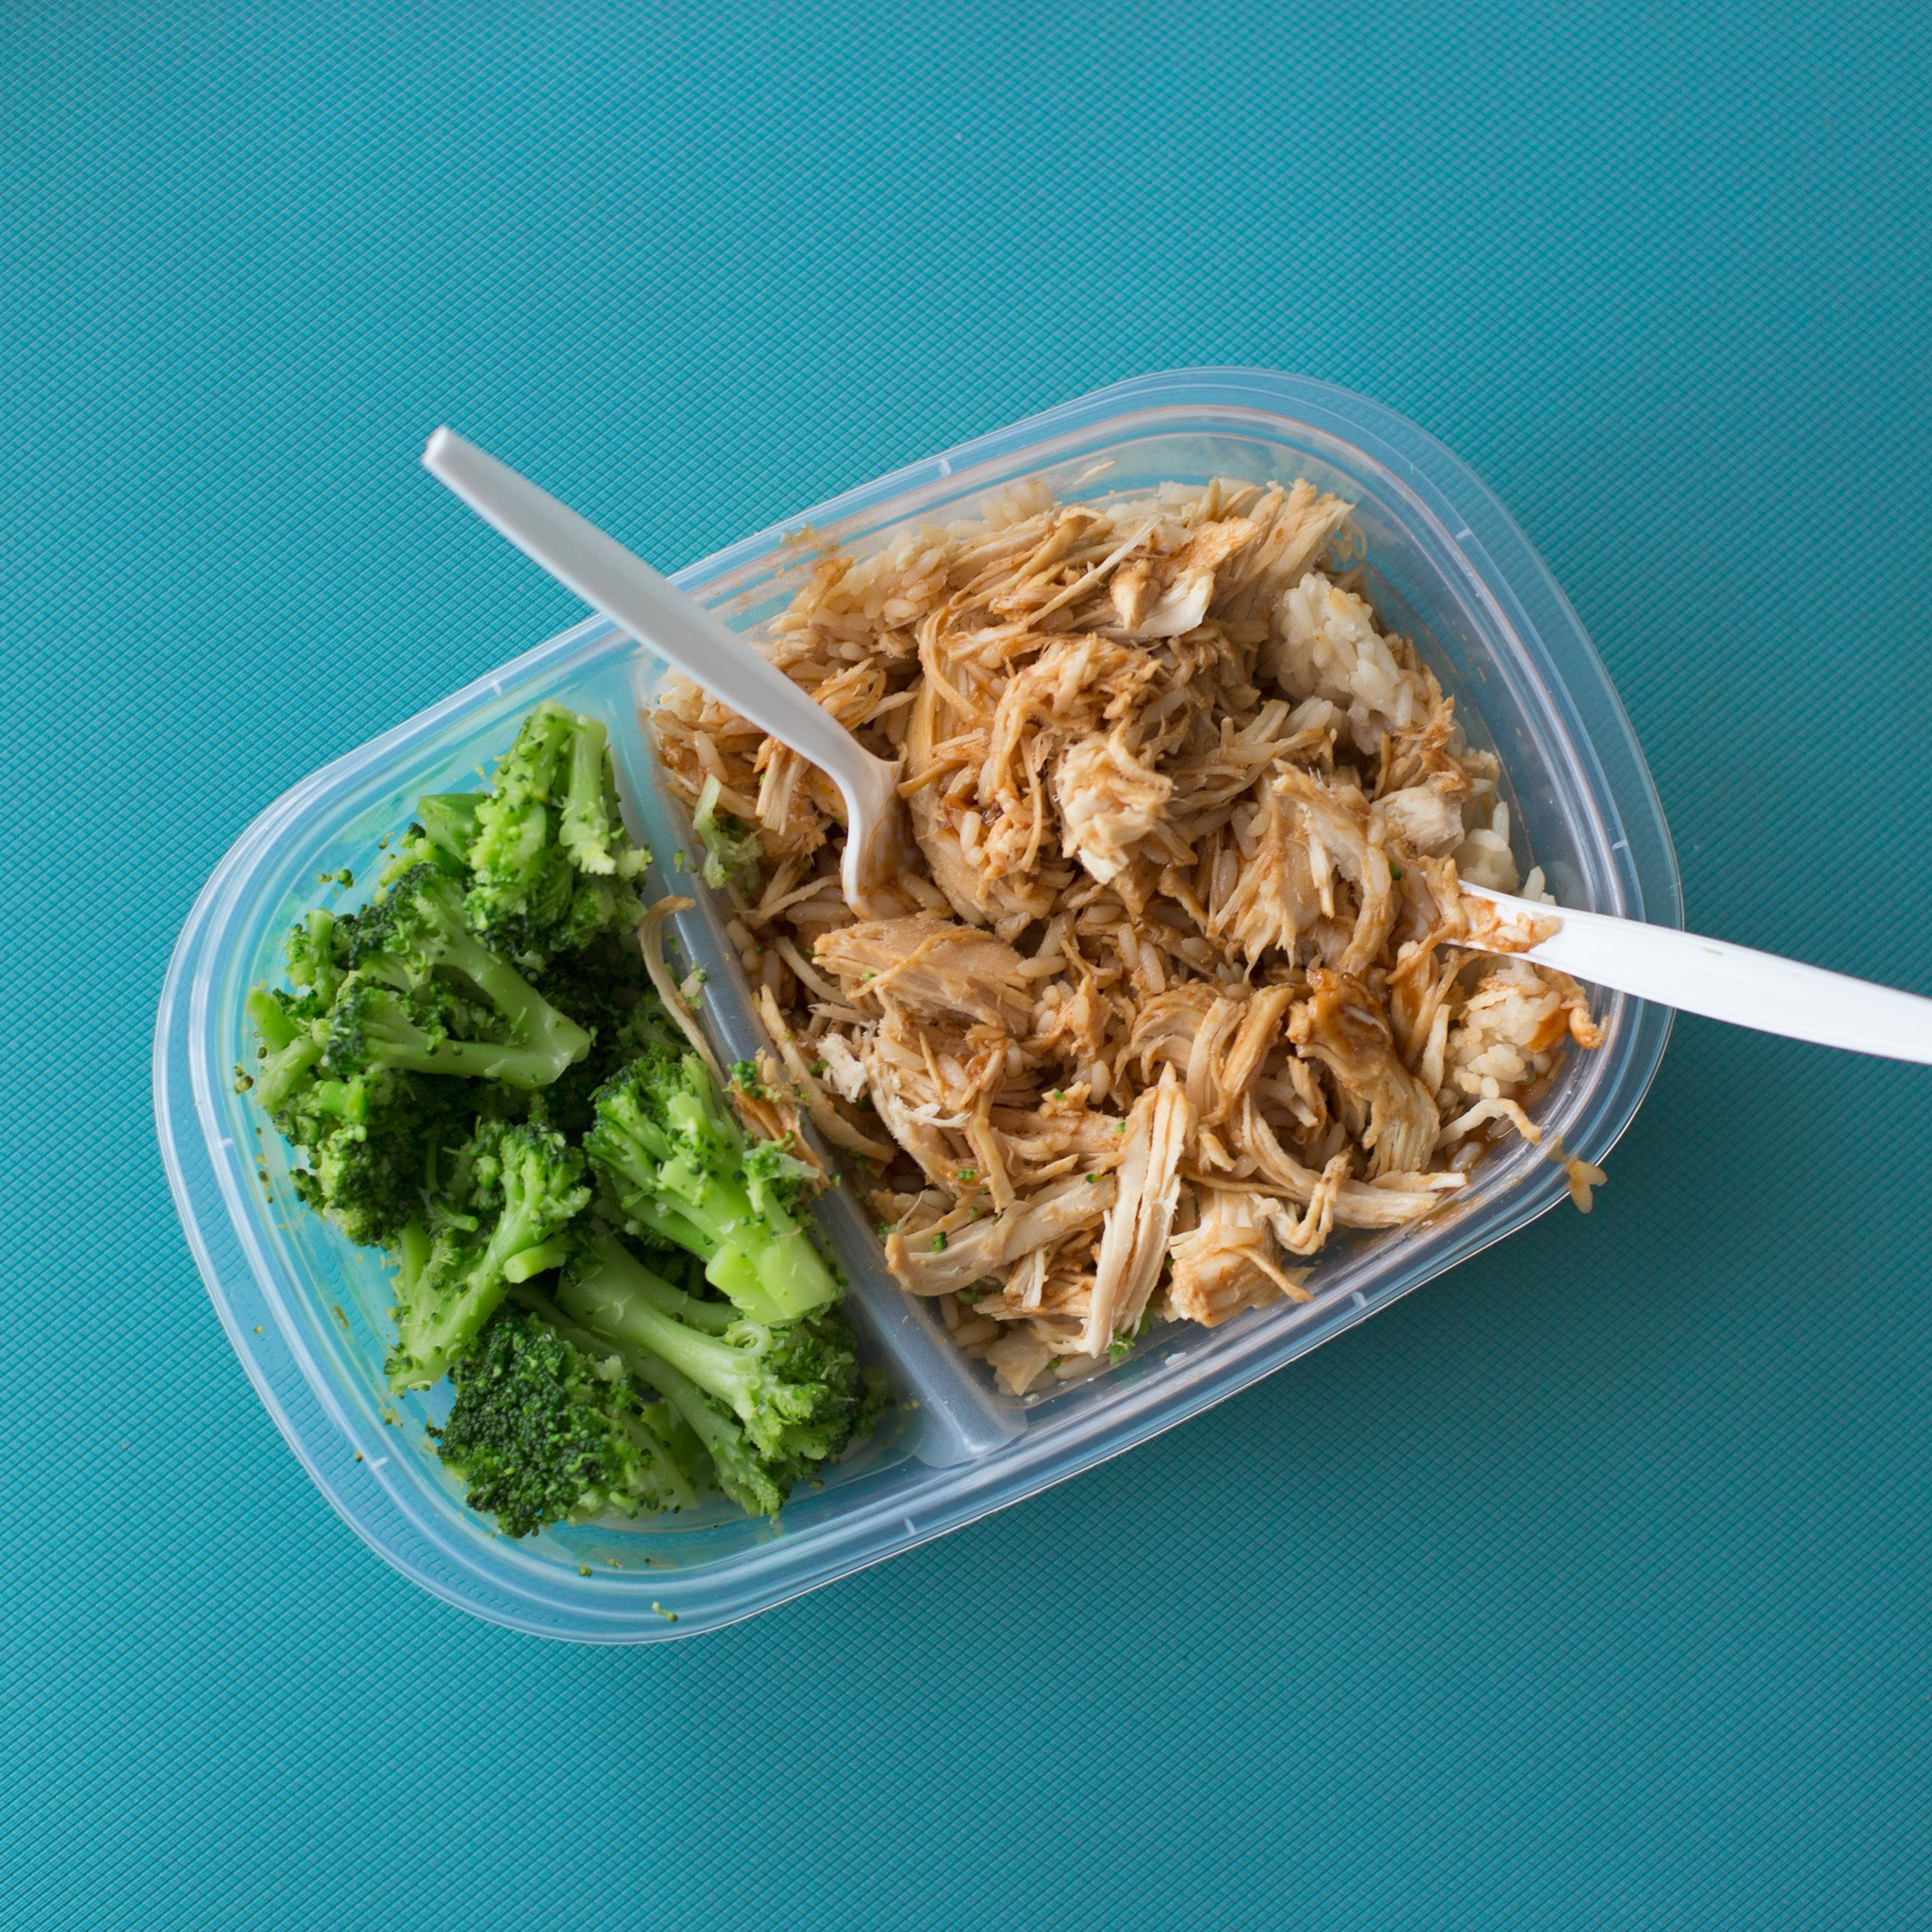 Tuna salad lunch box - why you should be batch cooking